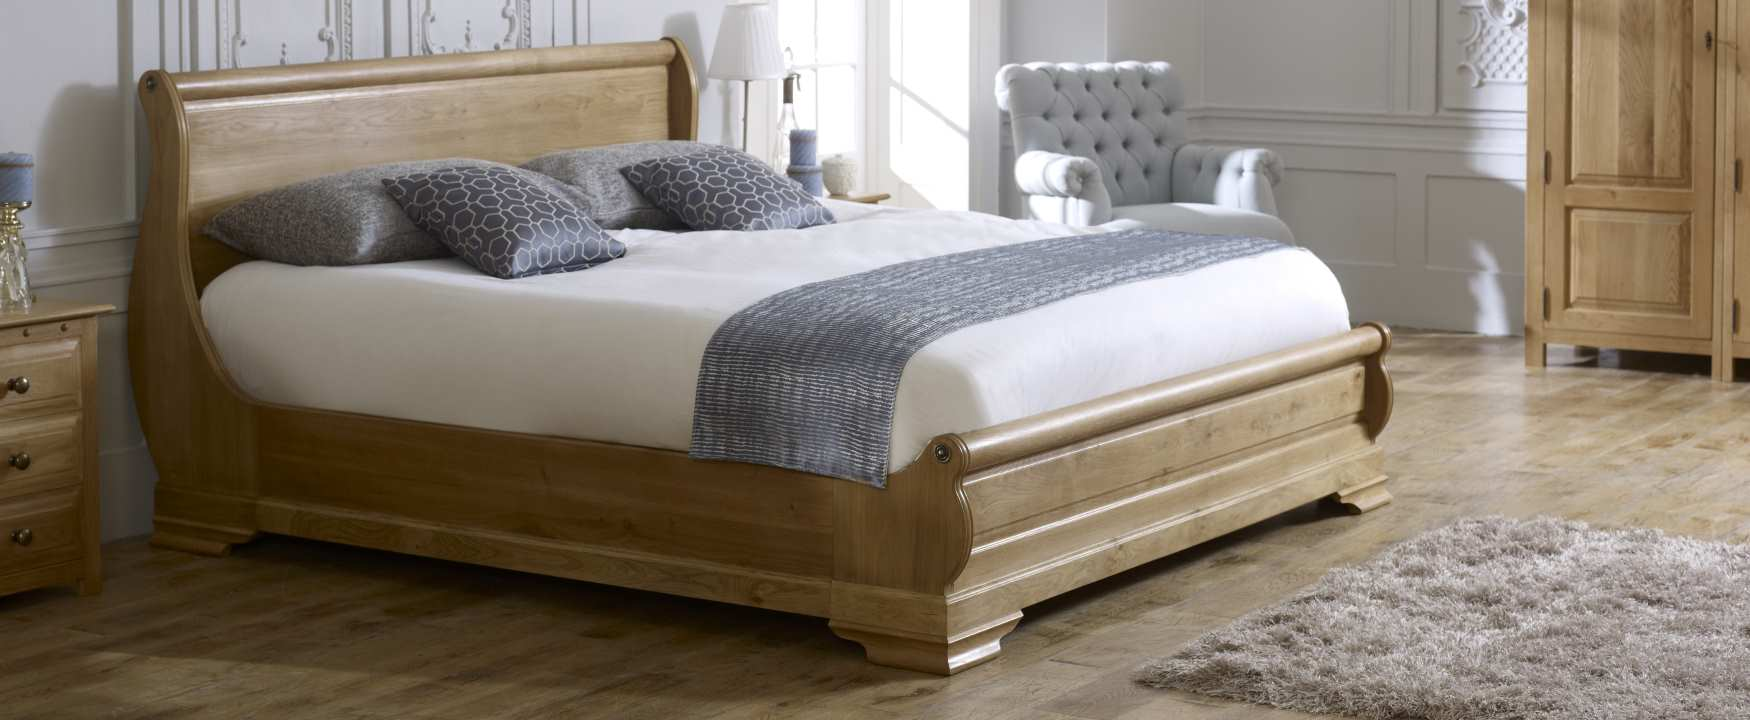 Wooden Beds Solid Wood Beds From Revival Beds Handmade Beds